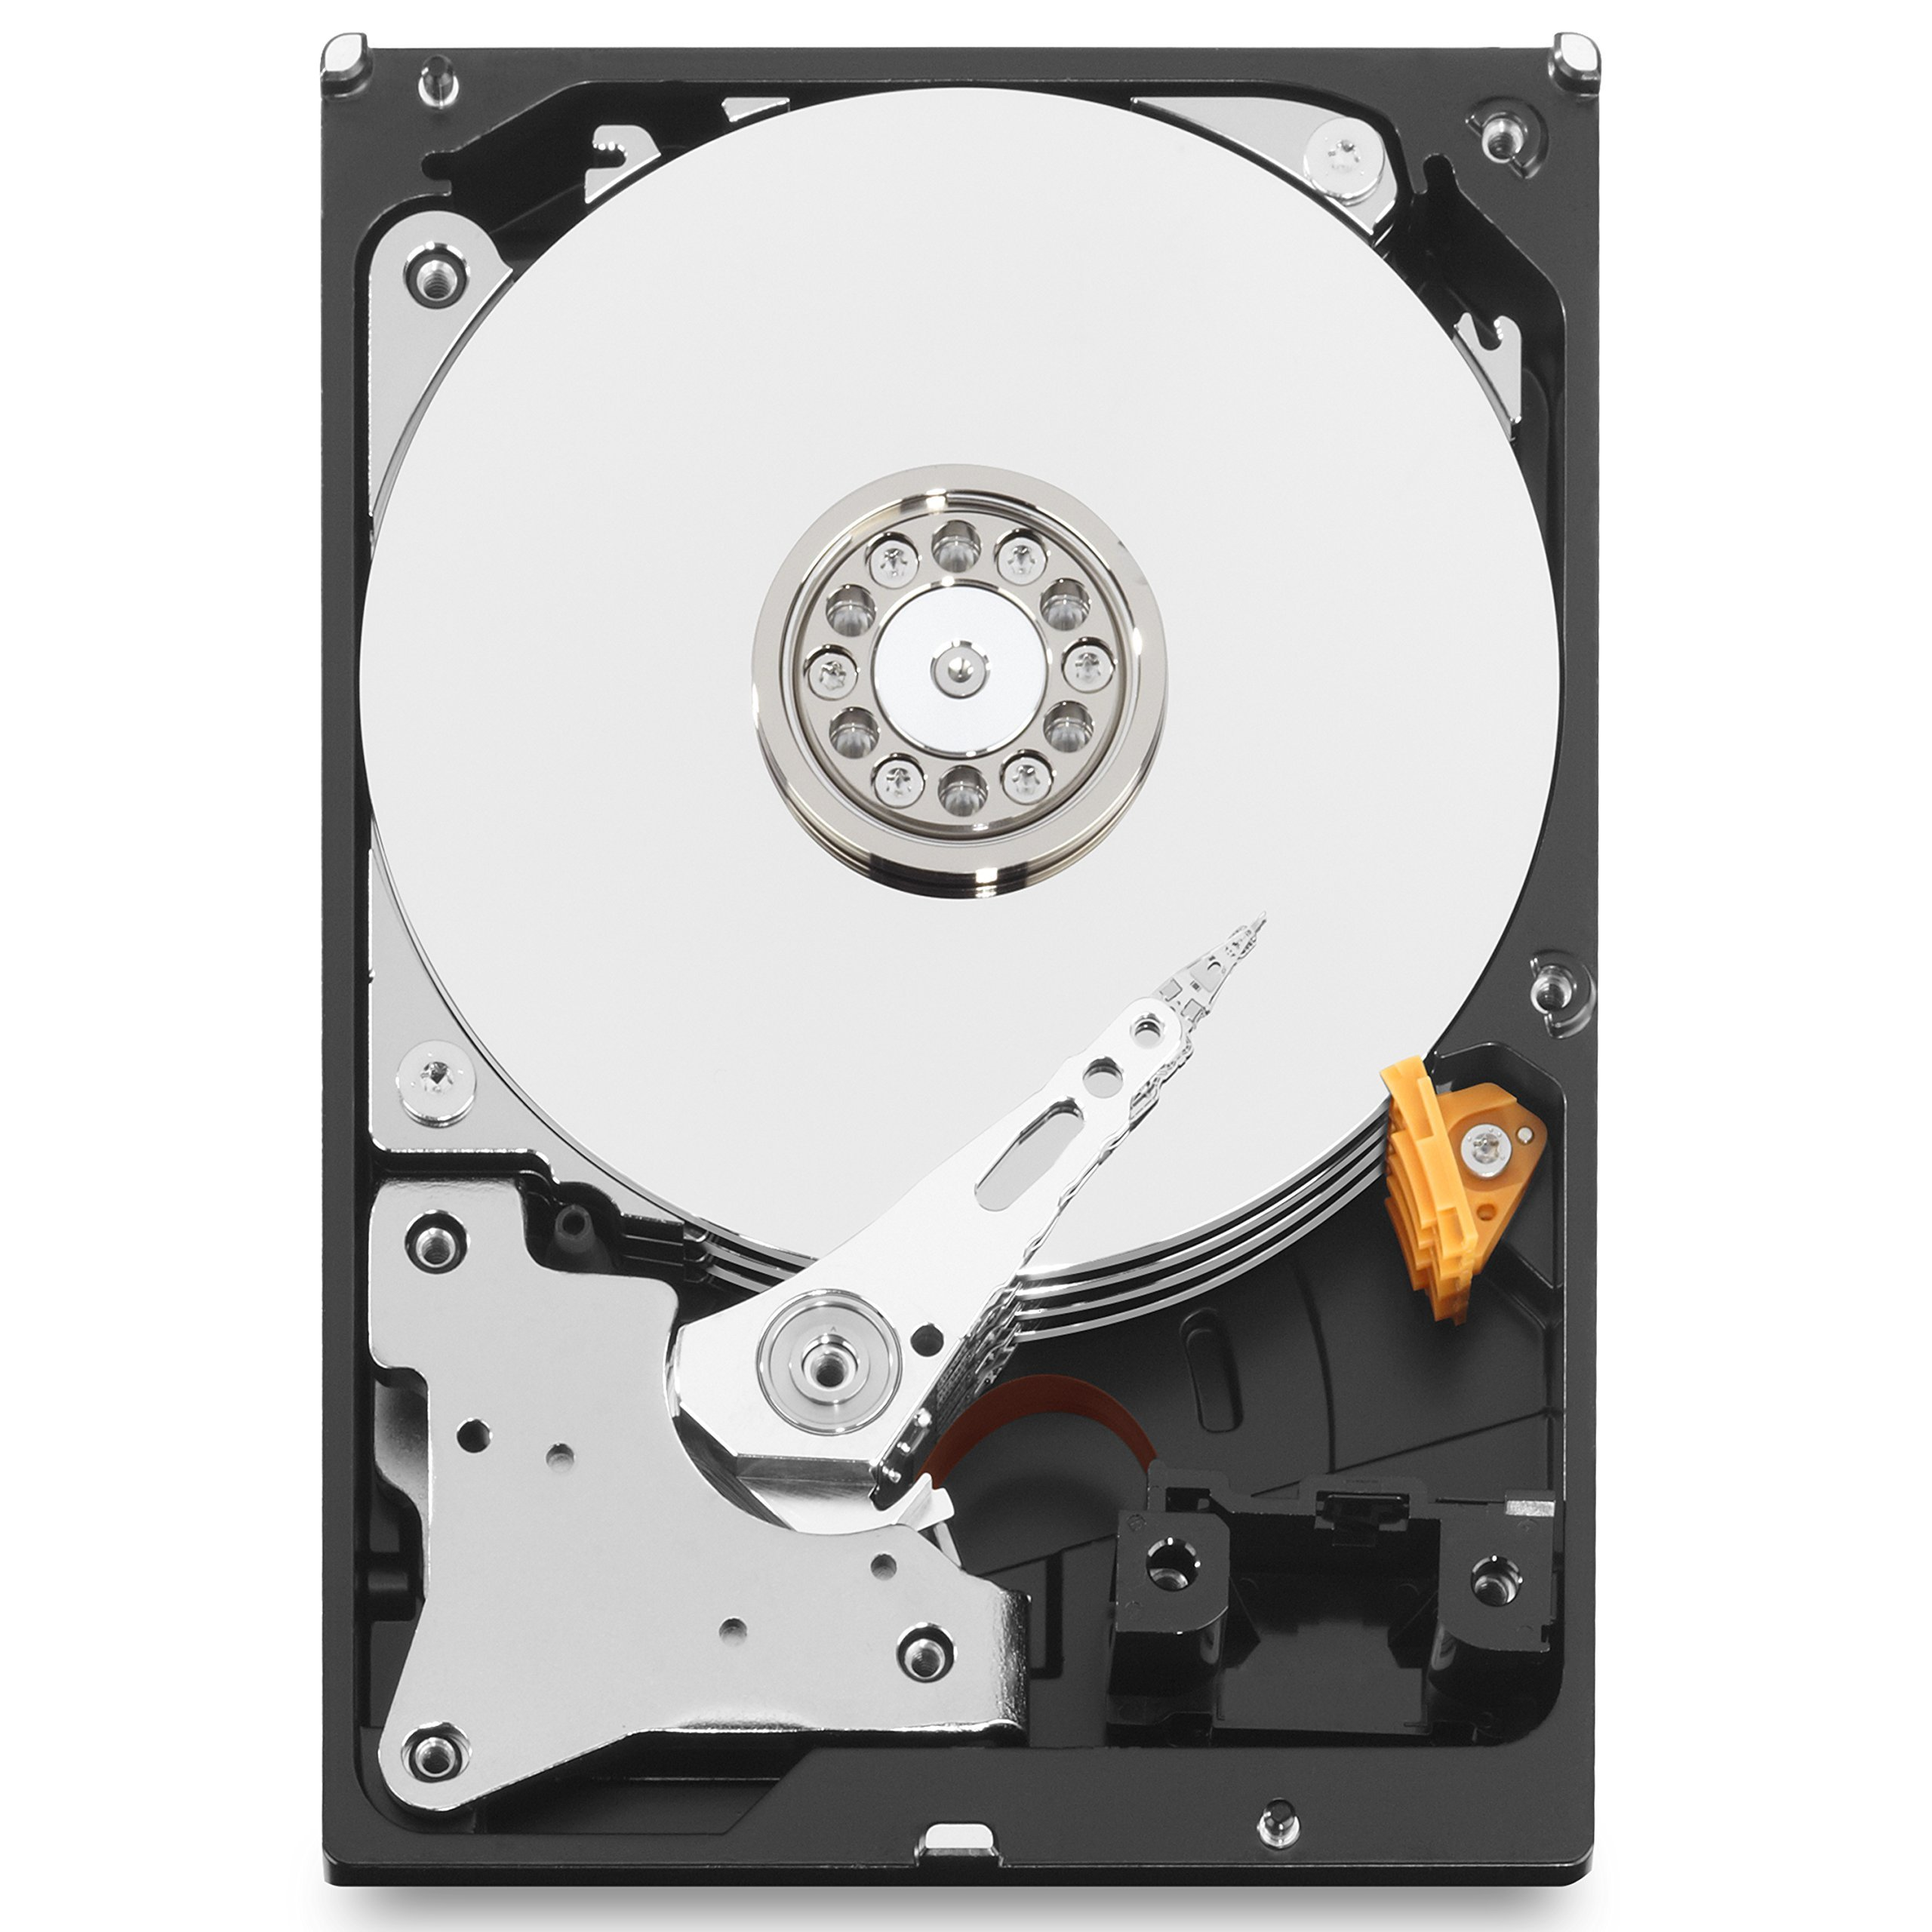 WD Purple 1TB Surveillance Hard Disk Drive - 5400 RPM Class SATA 6 Gb/s 64MB Cache 3.5 Inch - WD10PURX [Old Version] (Certified Refurbished) by Western Digital (Image #7)